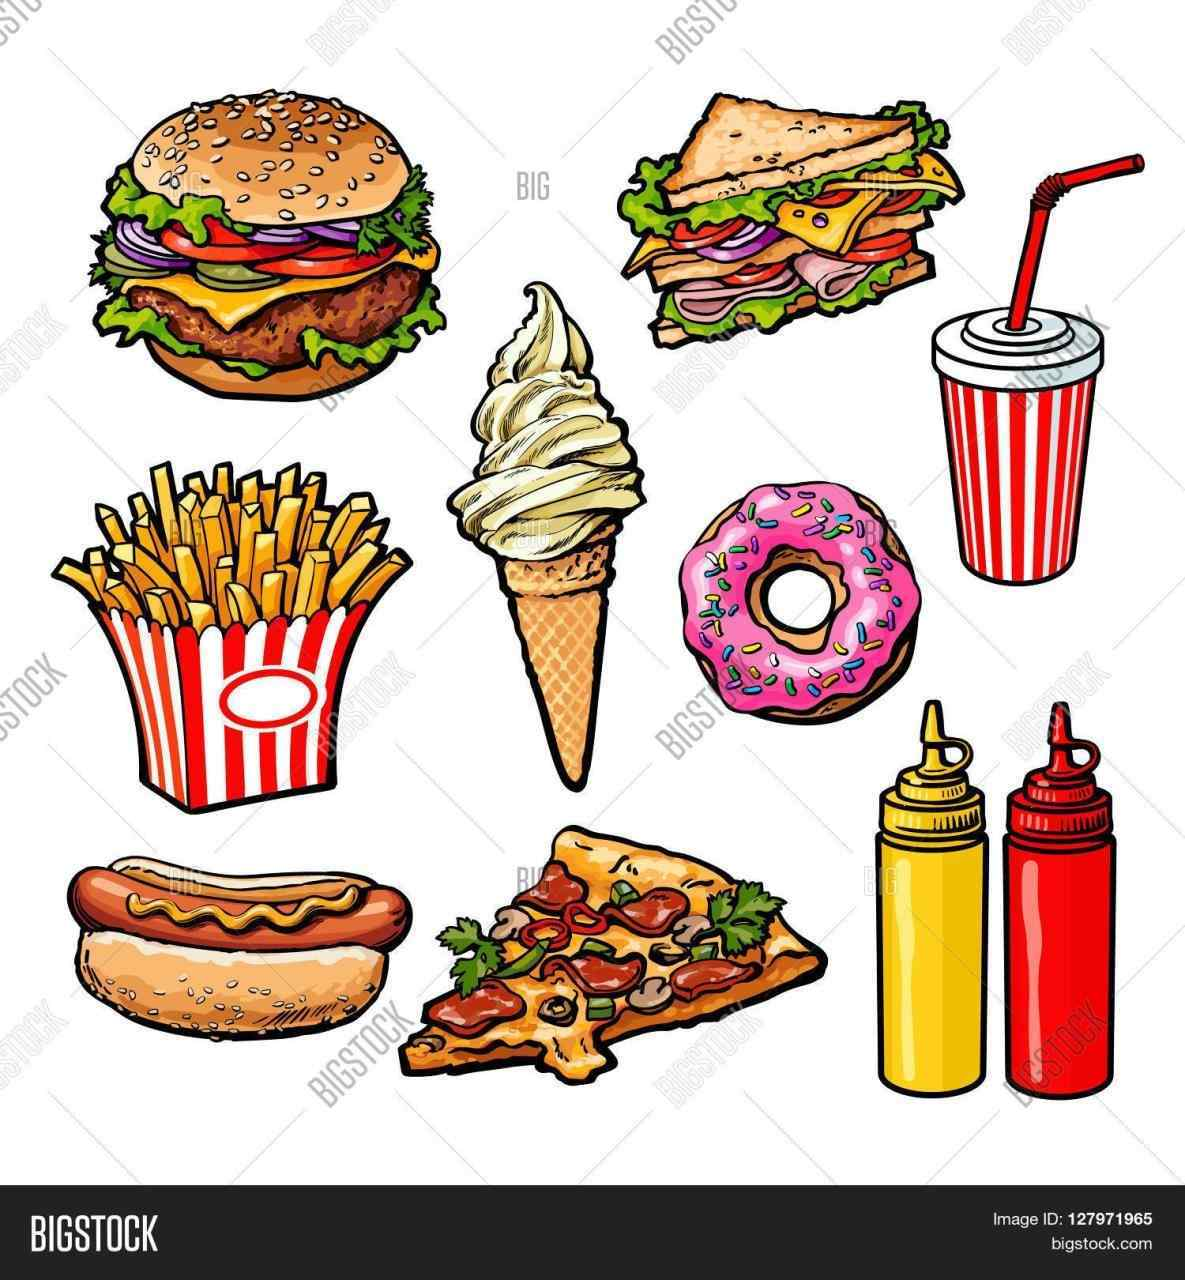 Junk Food Drawing at GetDrawings com | Free for personal use Junk